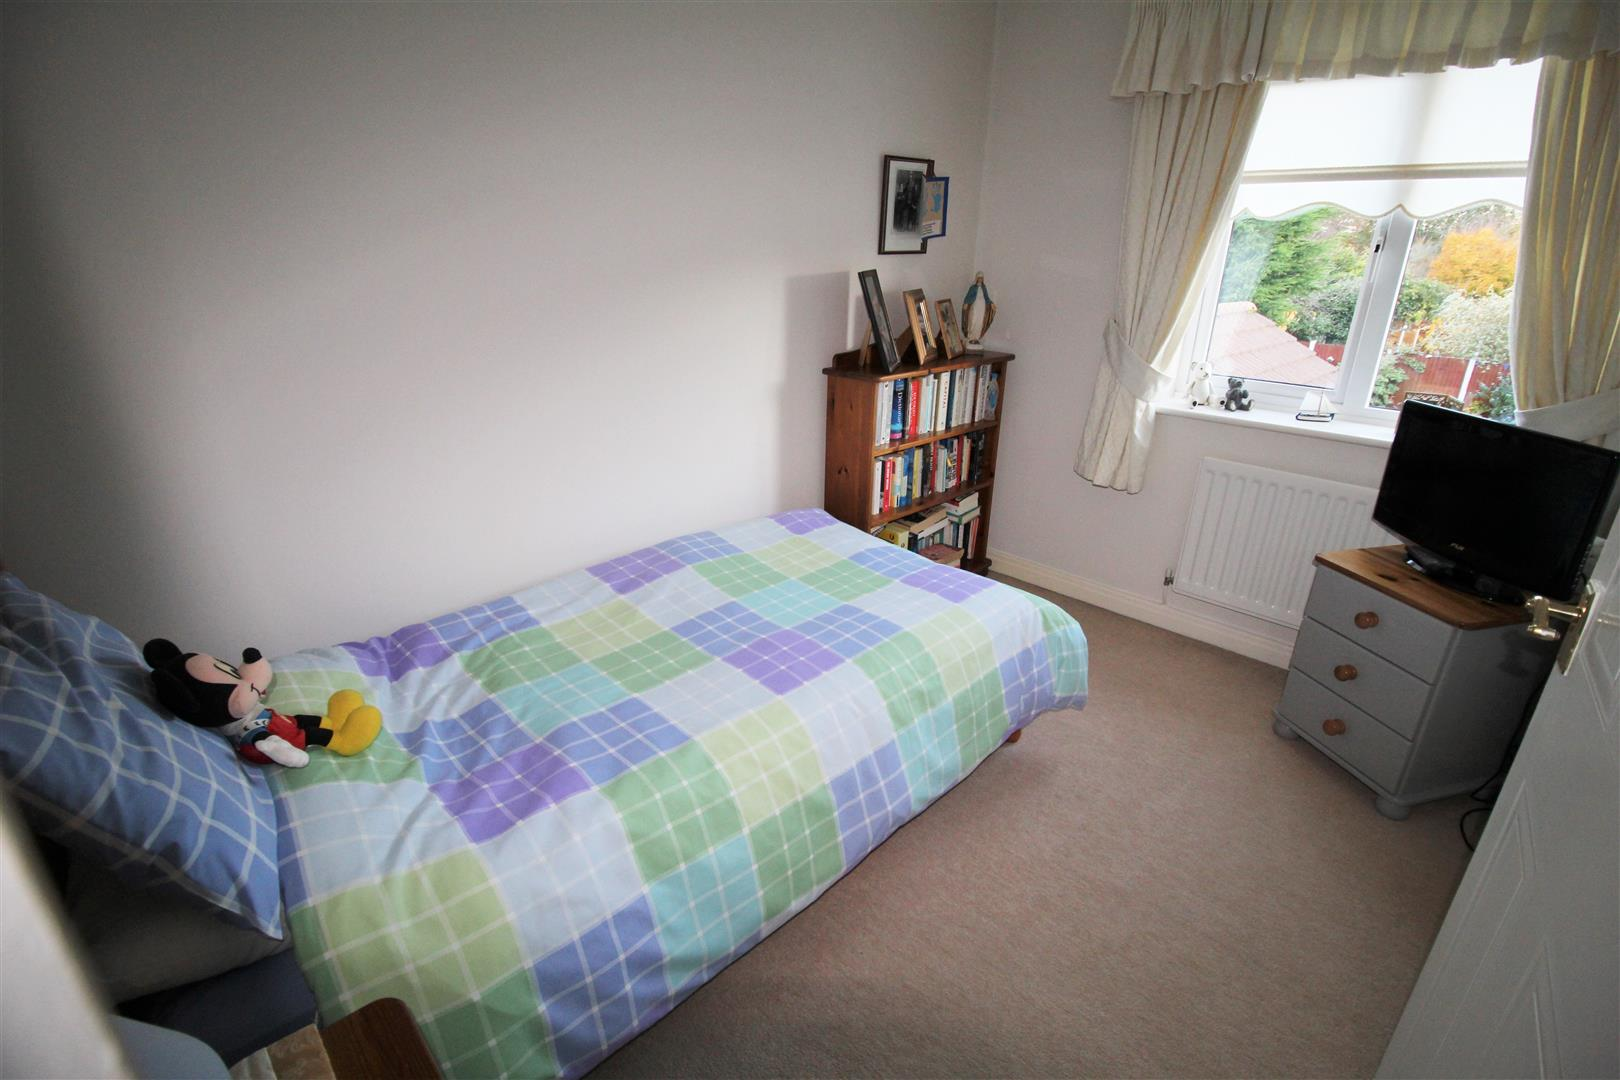 3 Bedrooms, House - Detached, Willsford Avenue, Liverpool